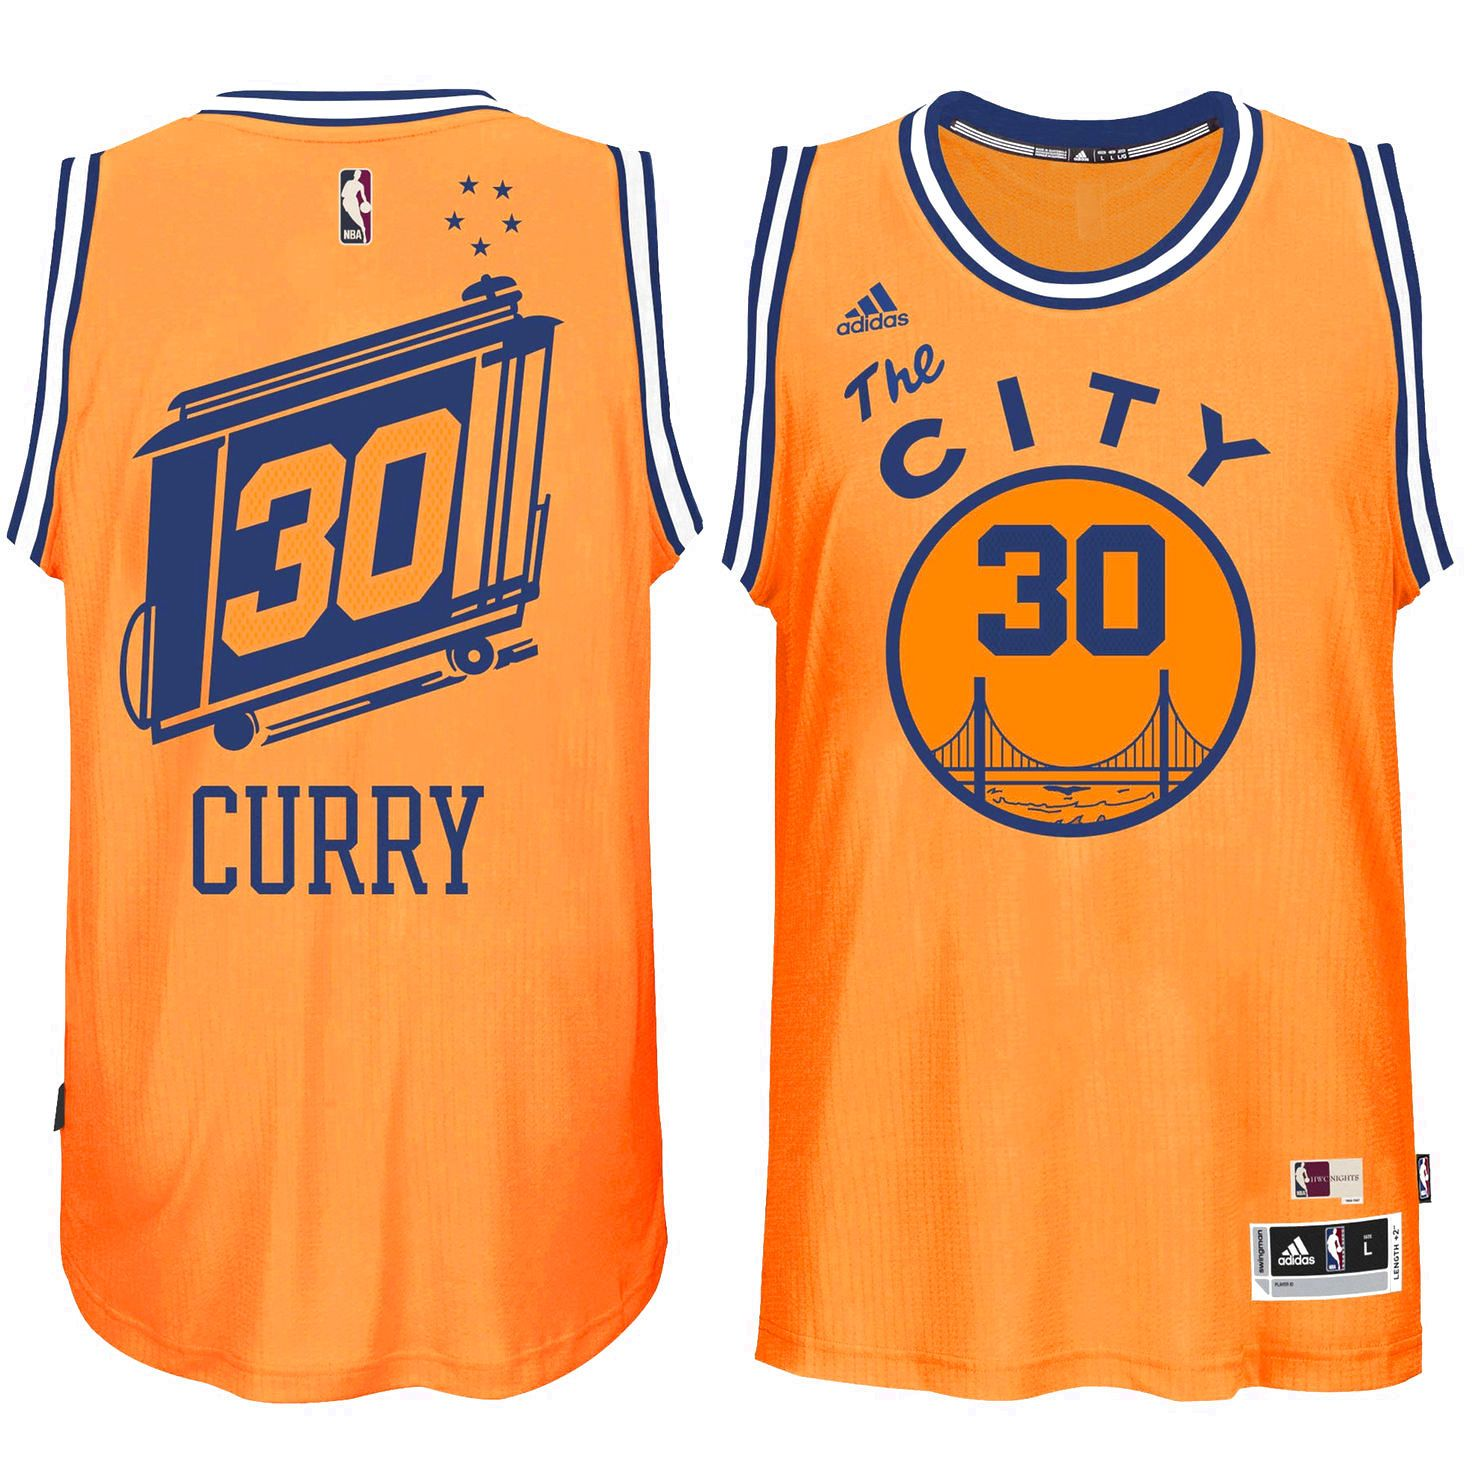 5da158e1755a Stephen Curry Golden State Warriors adidas Current Player Hardwood Classics  Swingman climacool Jersey - Gold -  87.99